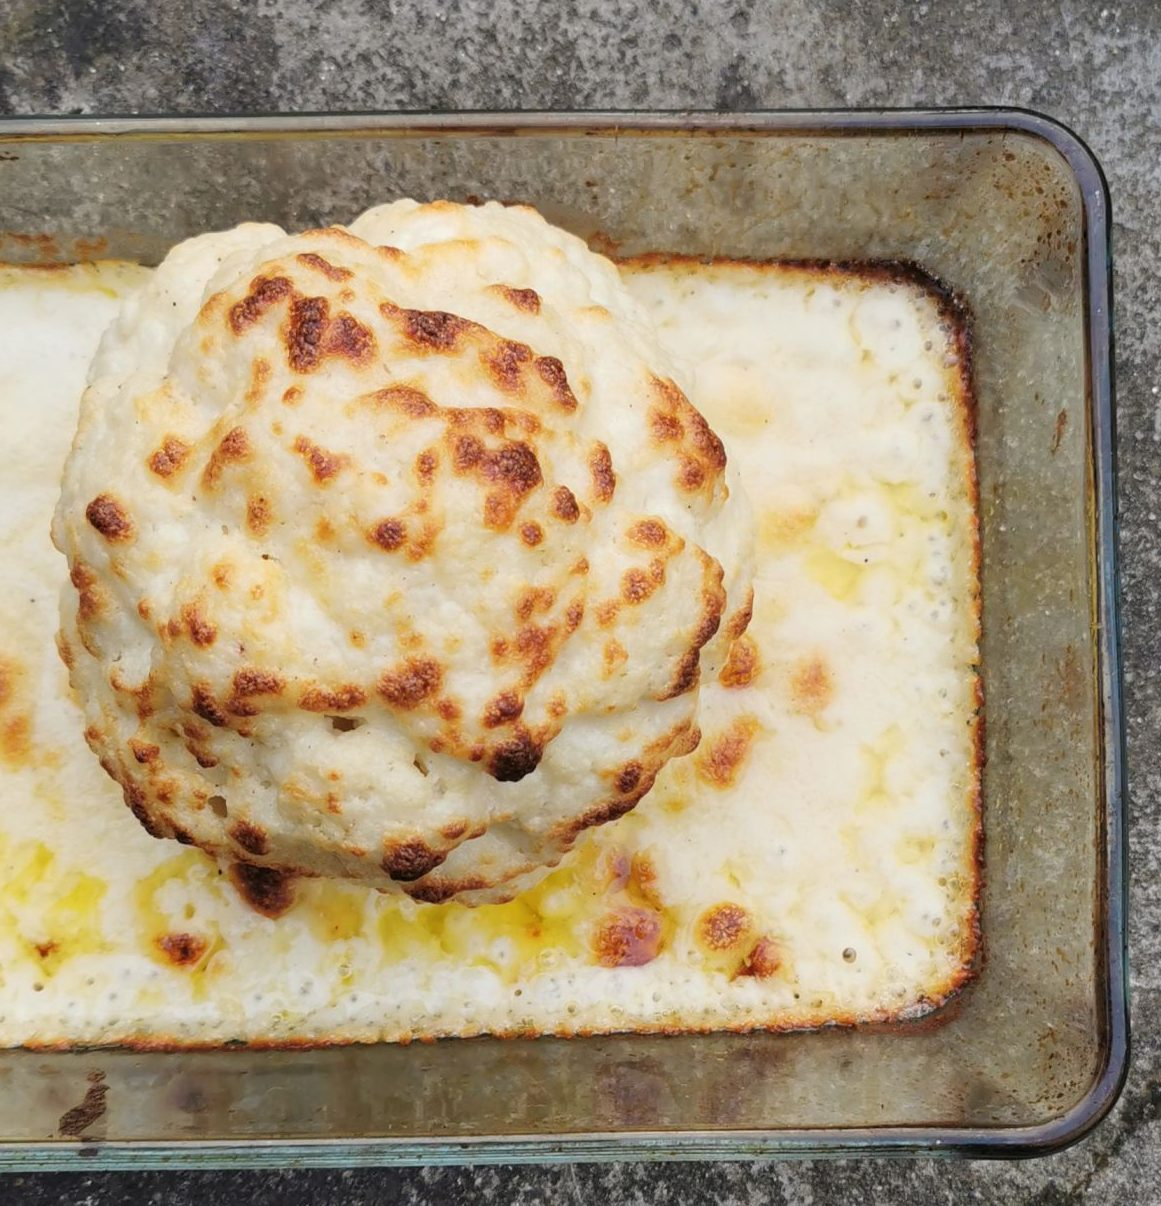 WHOLE CAULIFLOWER BAKED IN SMOKED GUBBEEN BECHAMEL